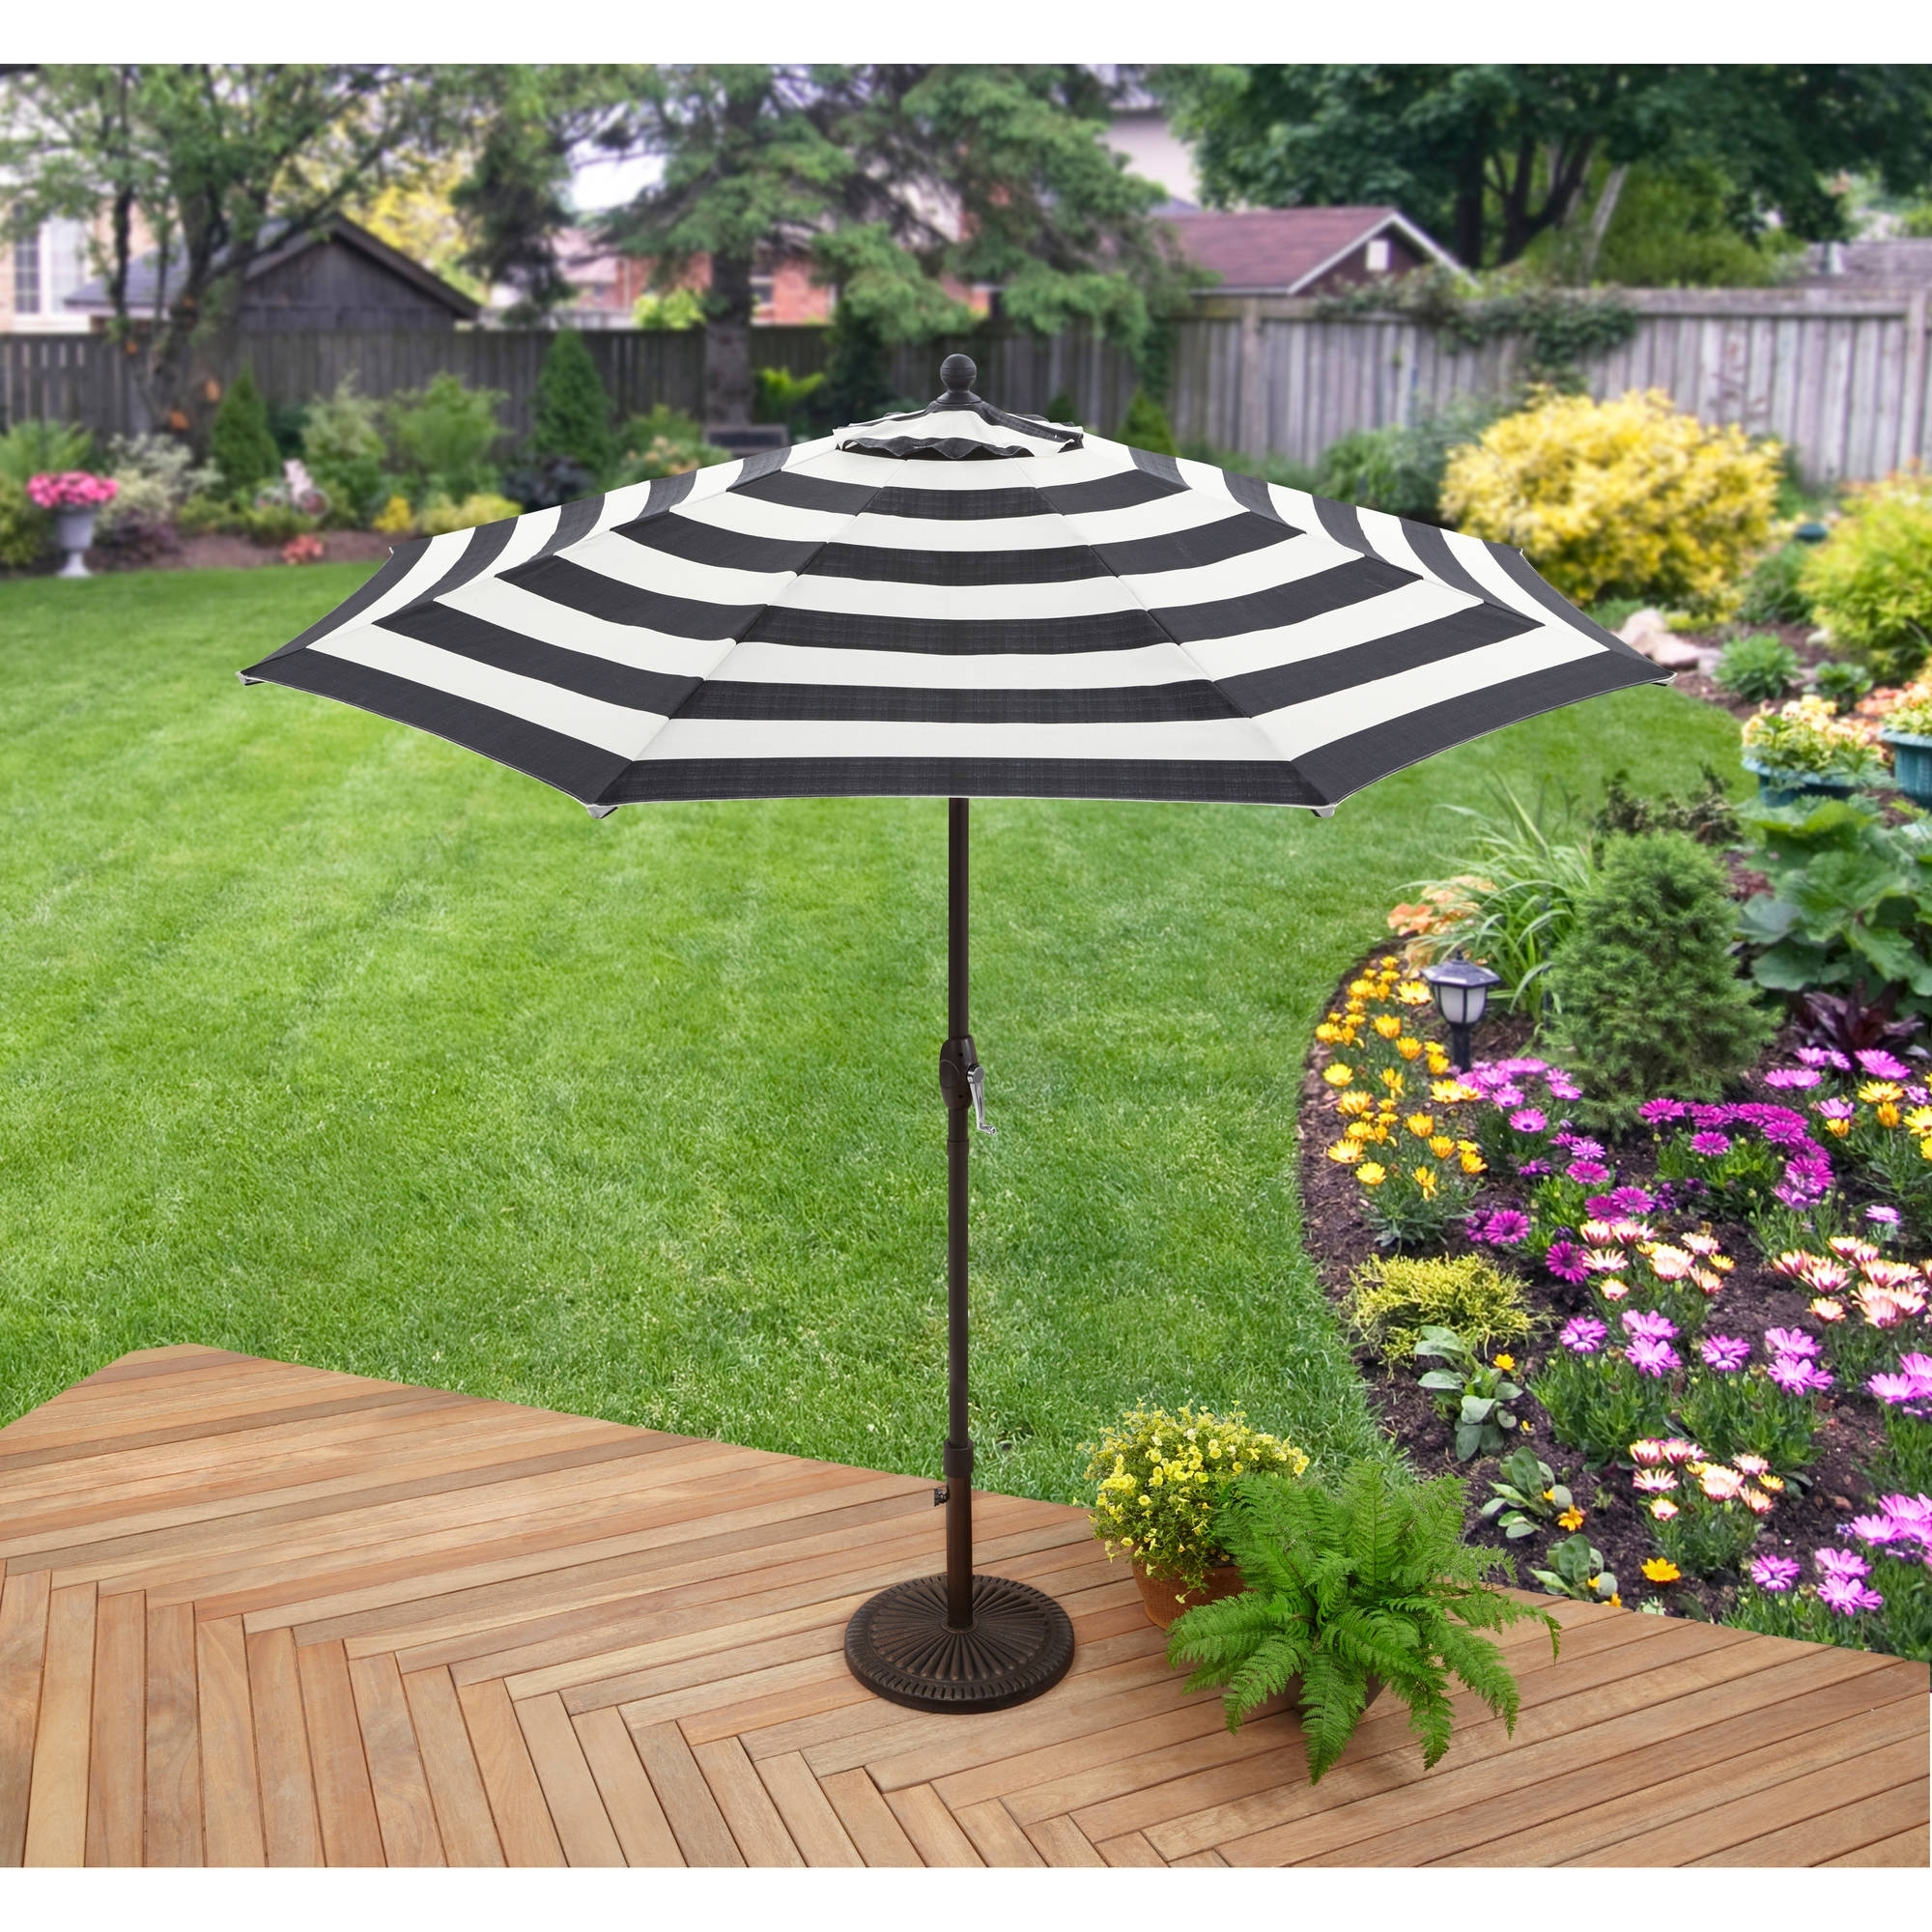 Walmart Umbrellas Patio With Well Liked Better Homes And Gardens 9' Market Umbrella, Cabana Stripe – Walmart (View 19 of 20)